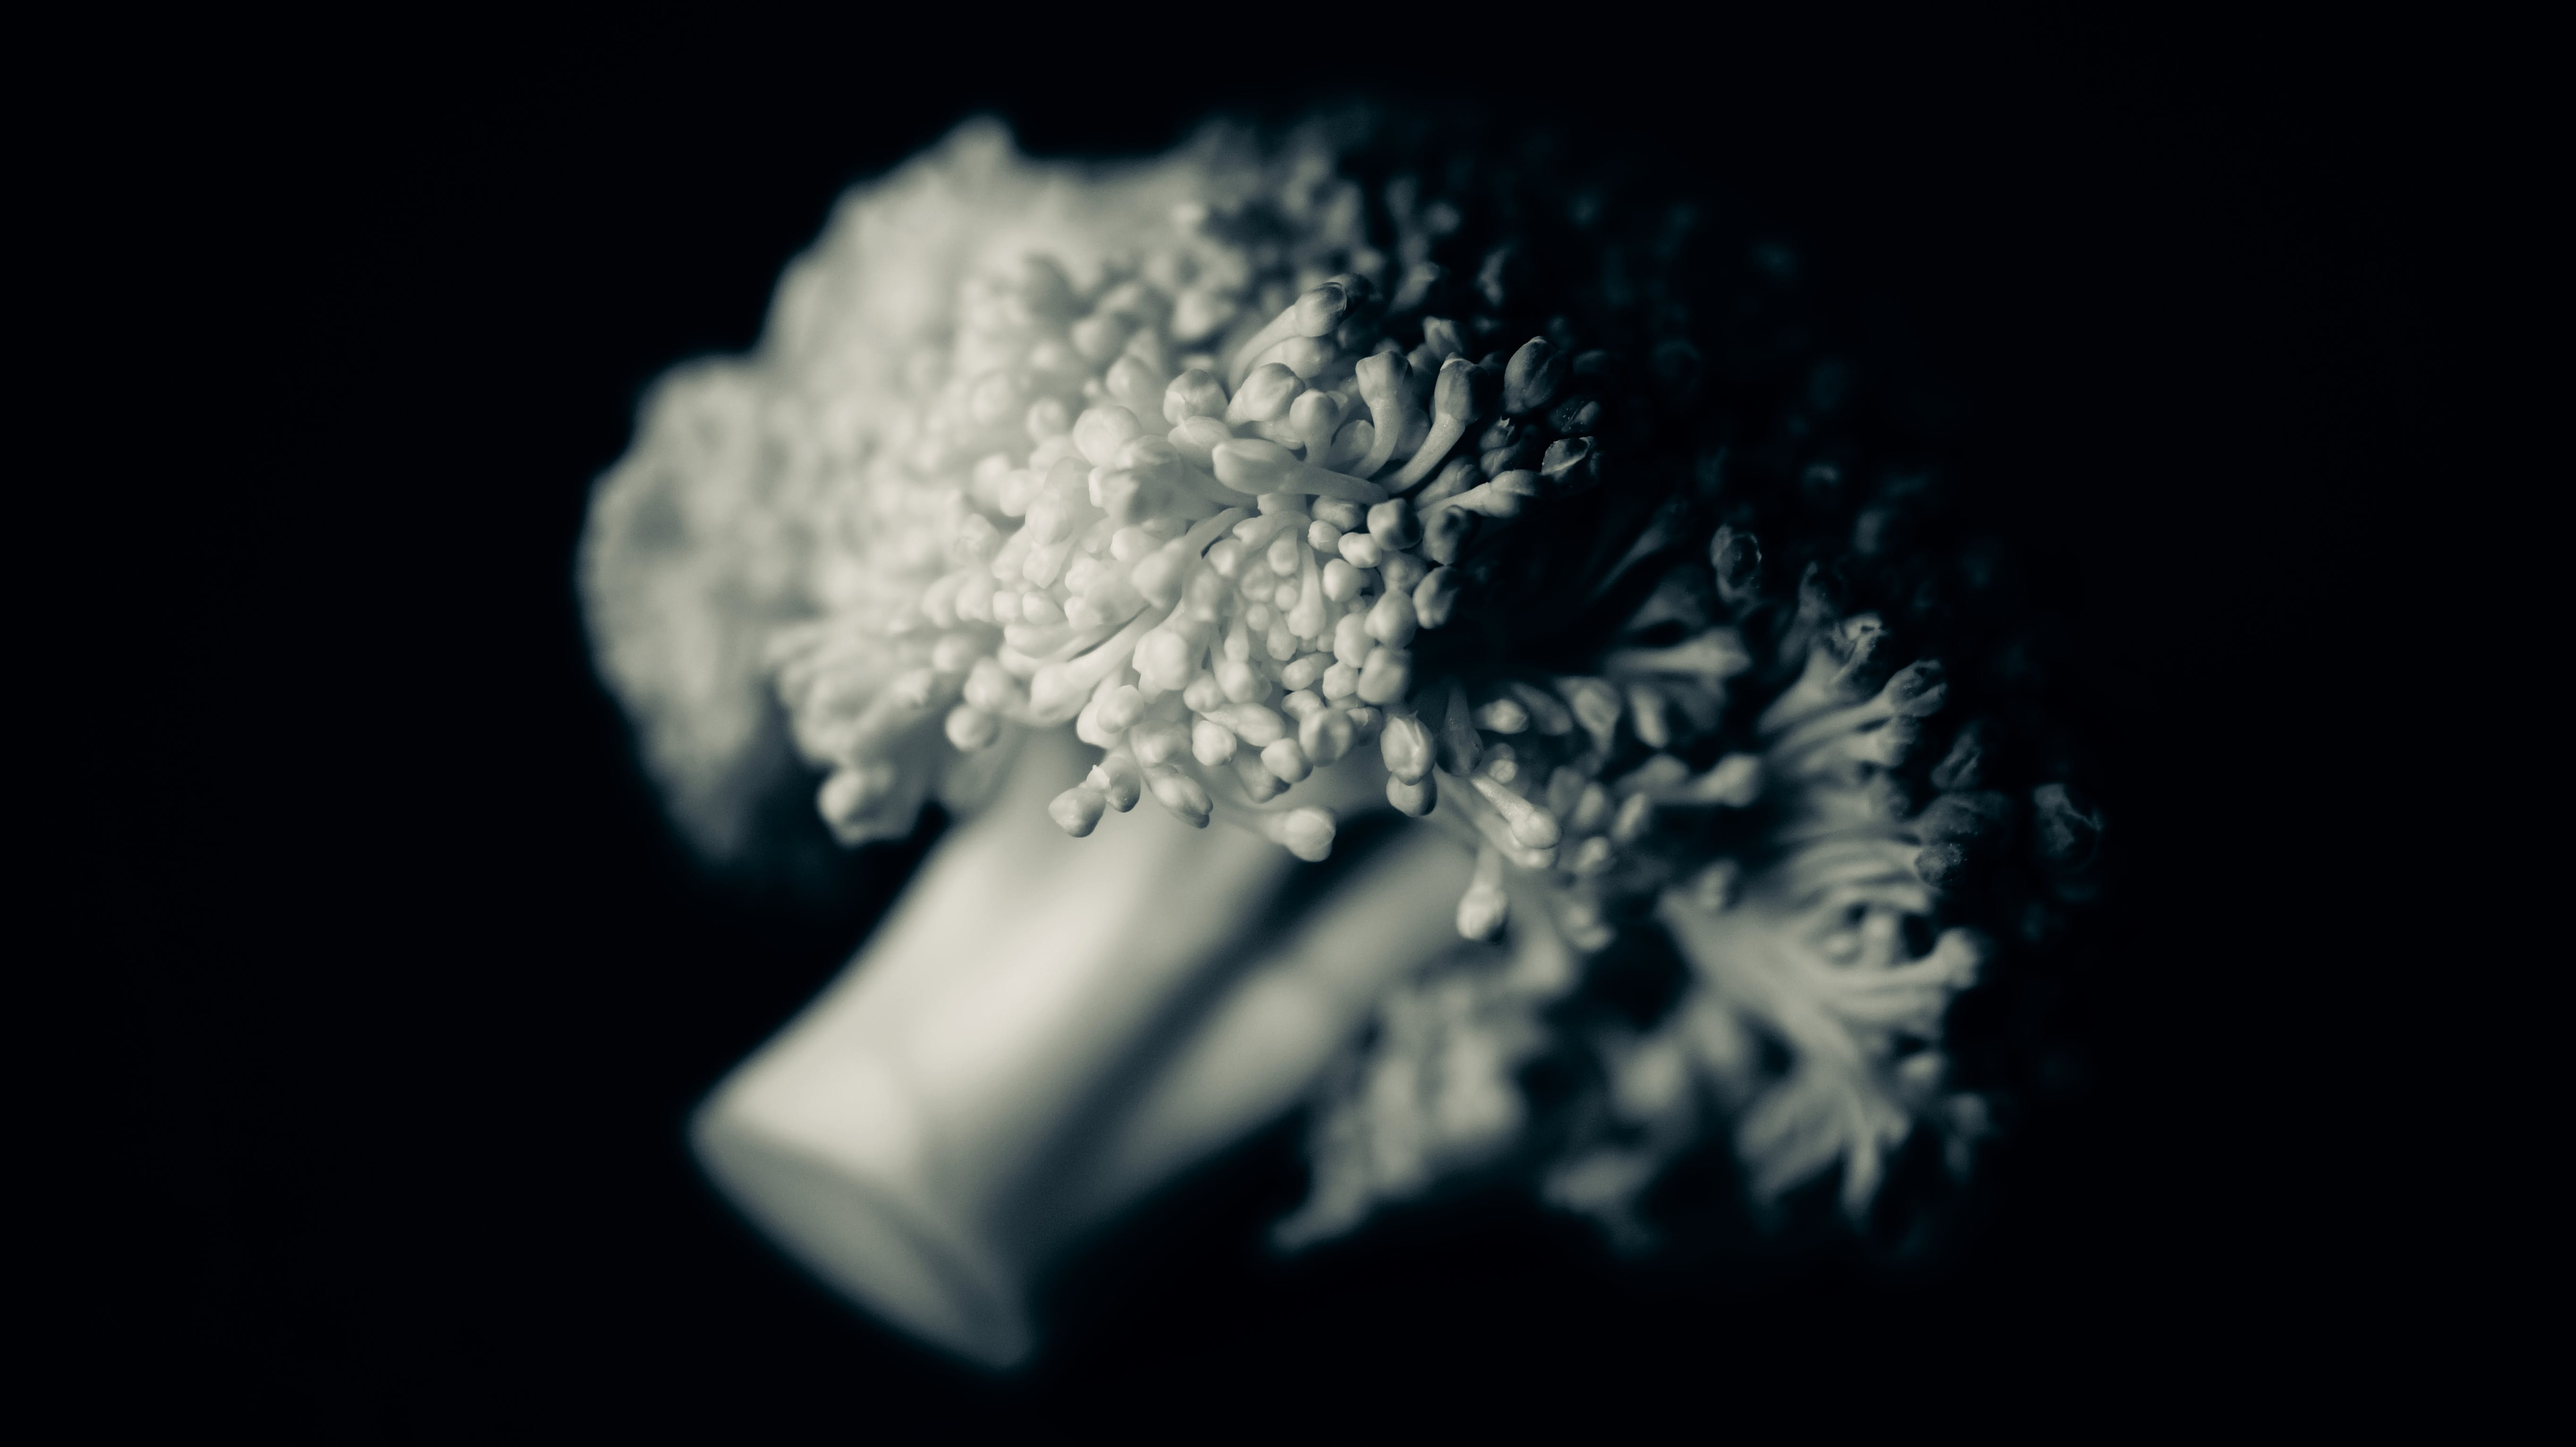 Free stock photo of black and white, broccoli, close-up view, macro photography